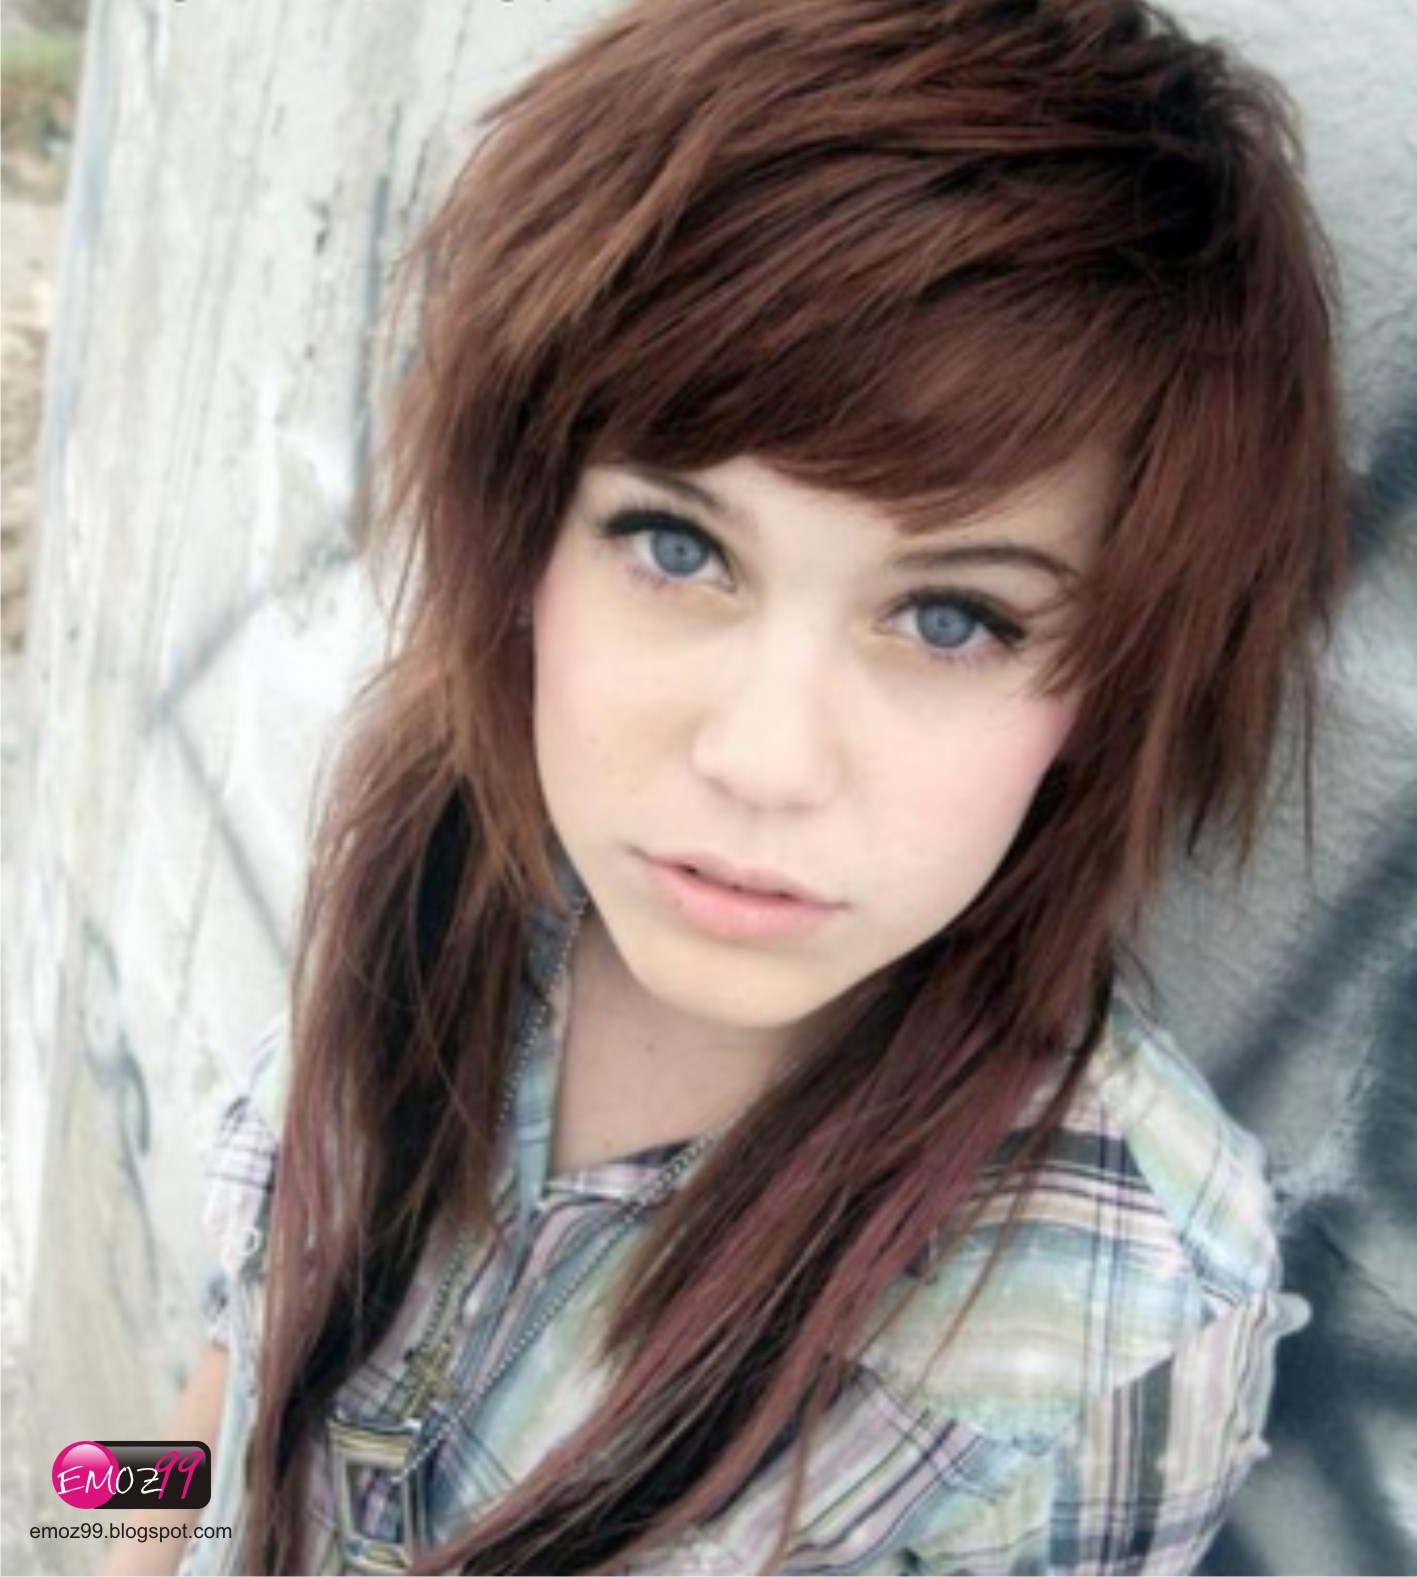 Cute Emo Girls Jpg 1417x1577 Cute Shy Emo Girls